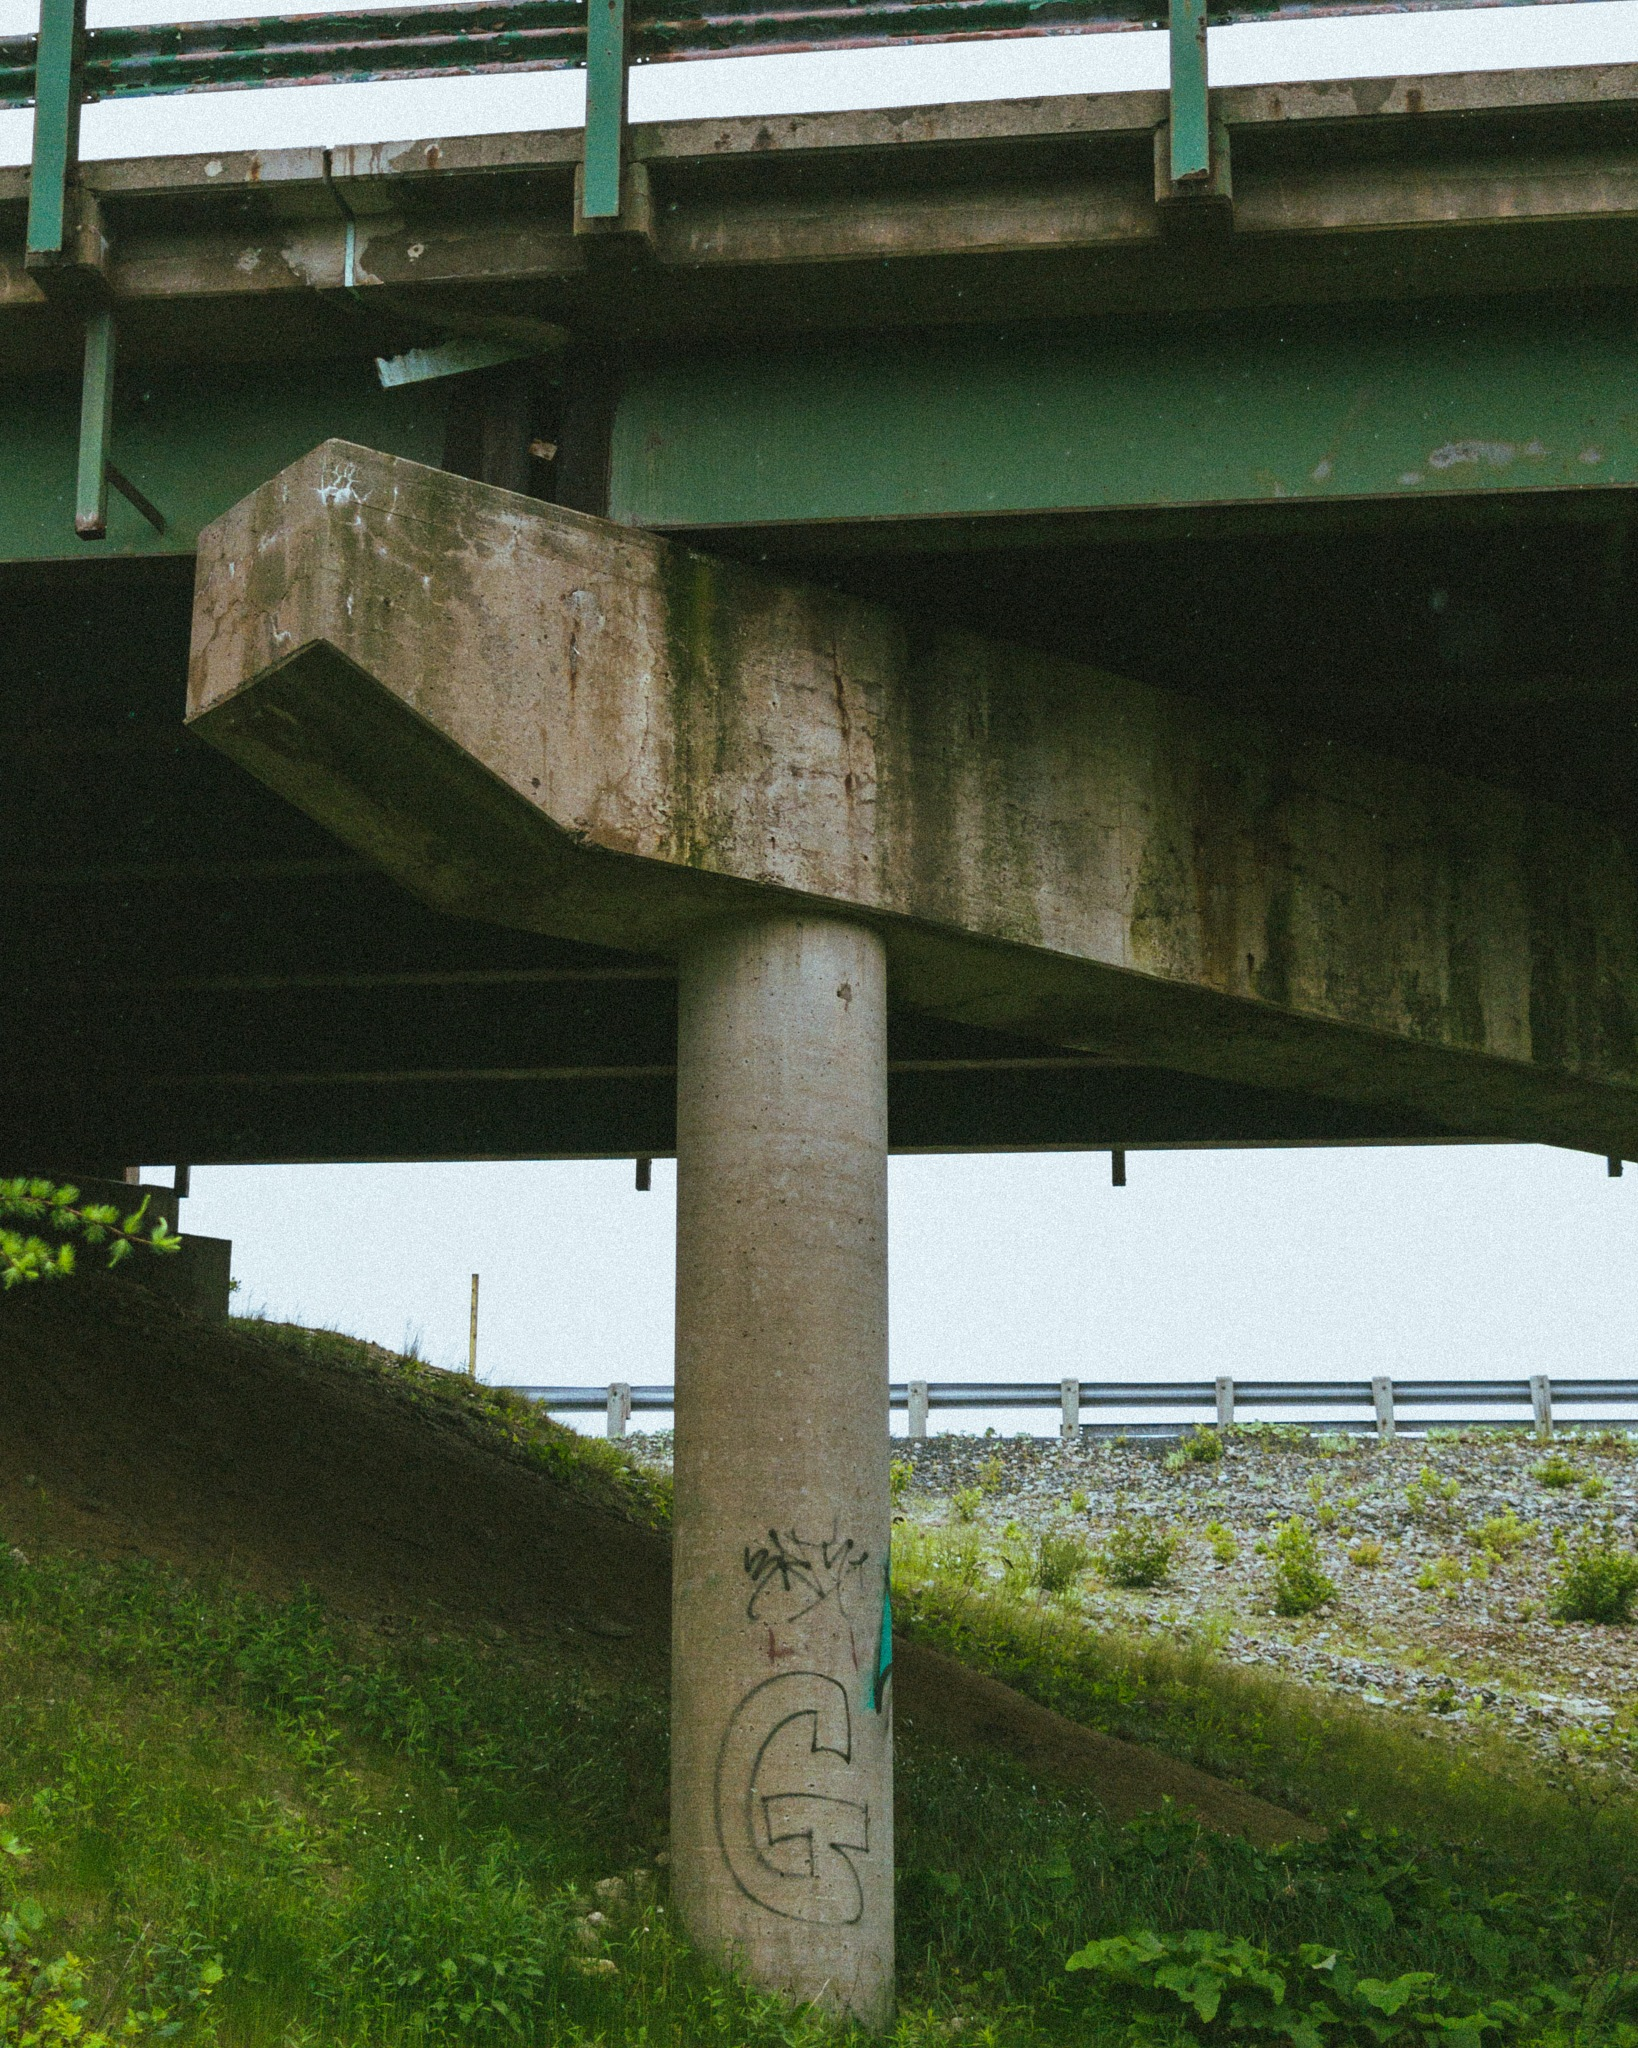 Overpass by Liam Hartery